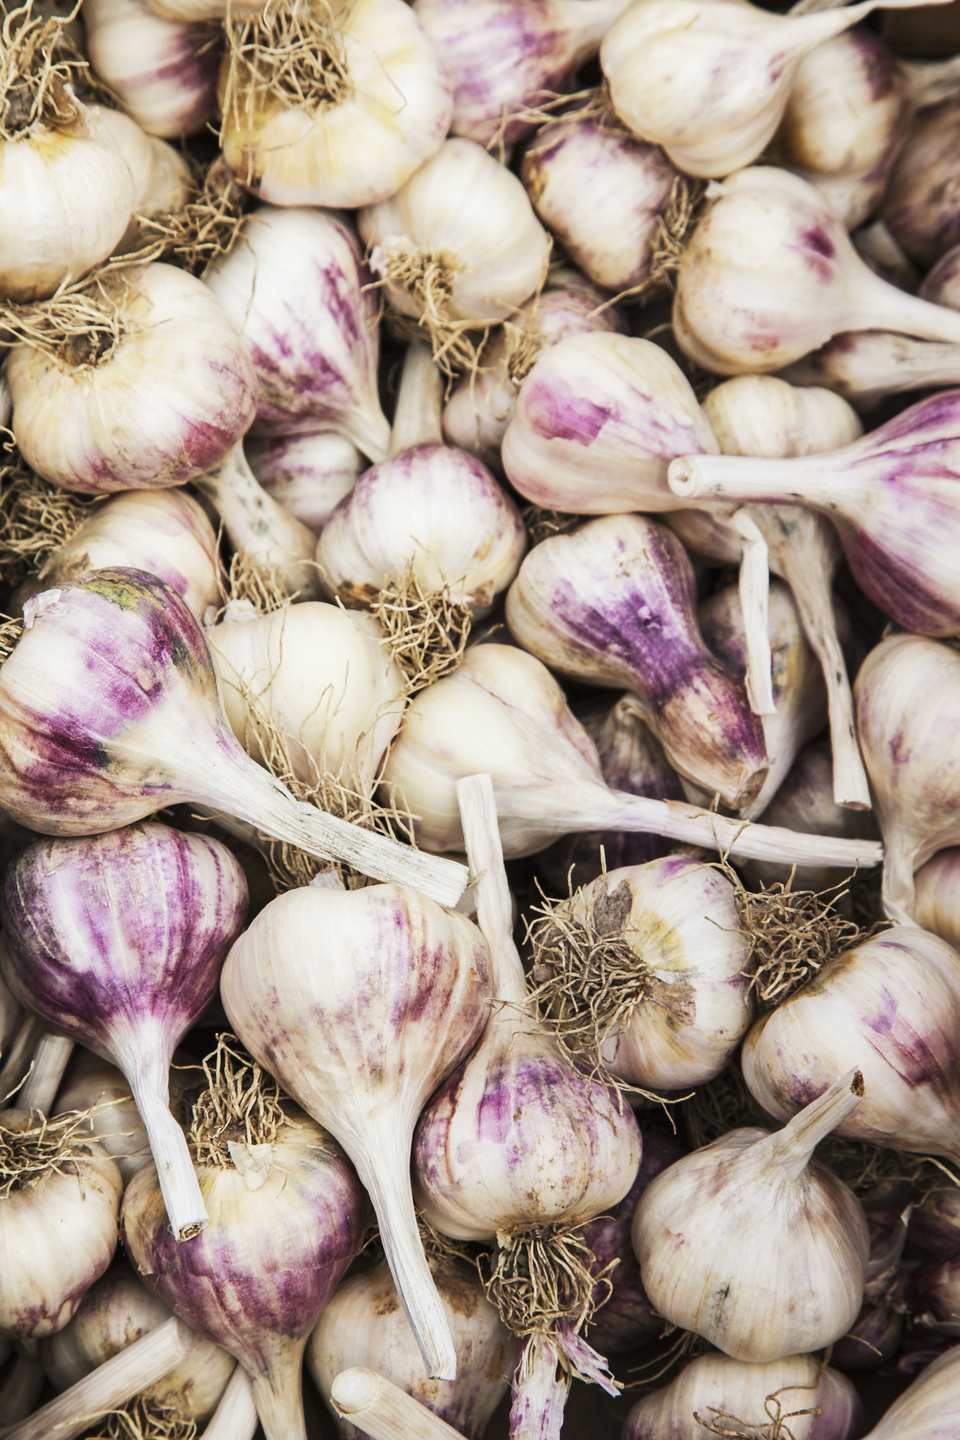 A pile of purple hardneck garlic